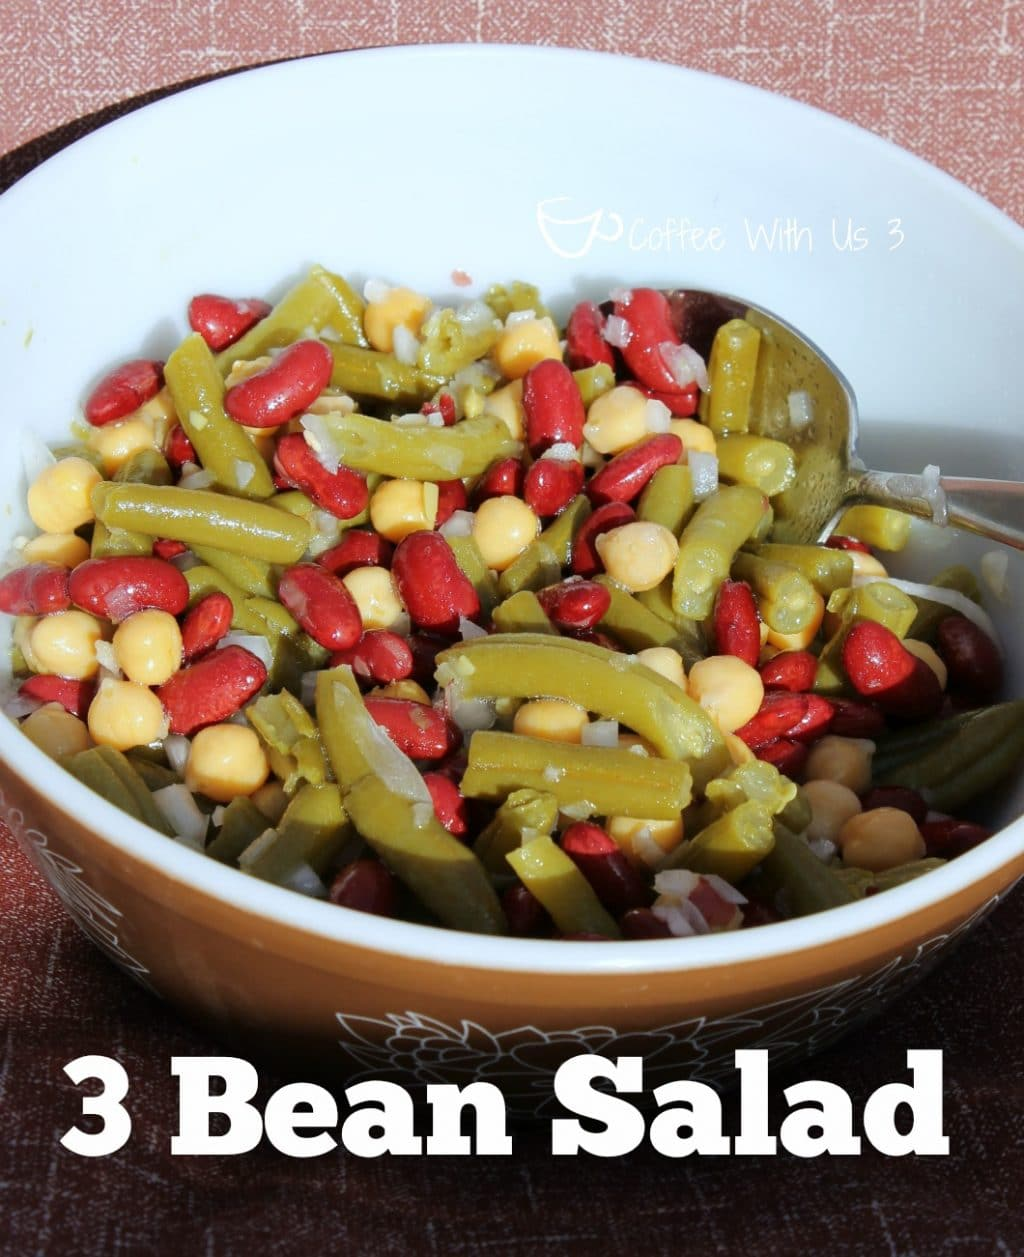 Easy 3 Bean Salad Recipe - Coffee With Us 3